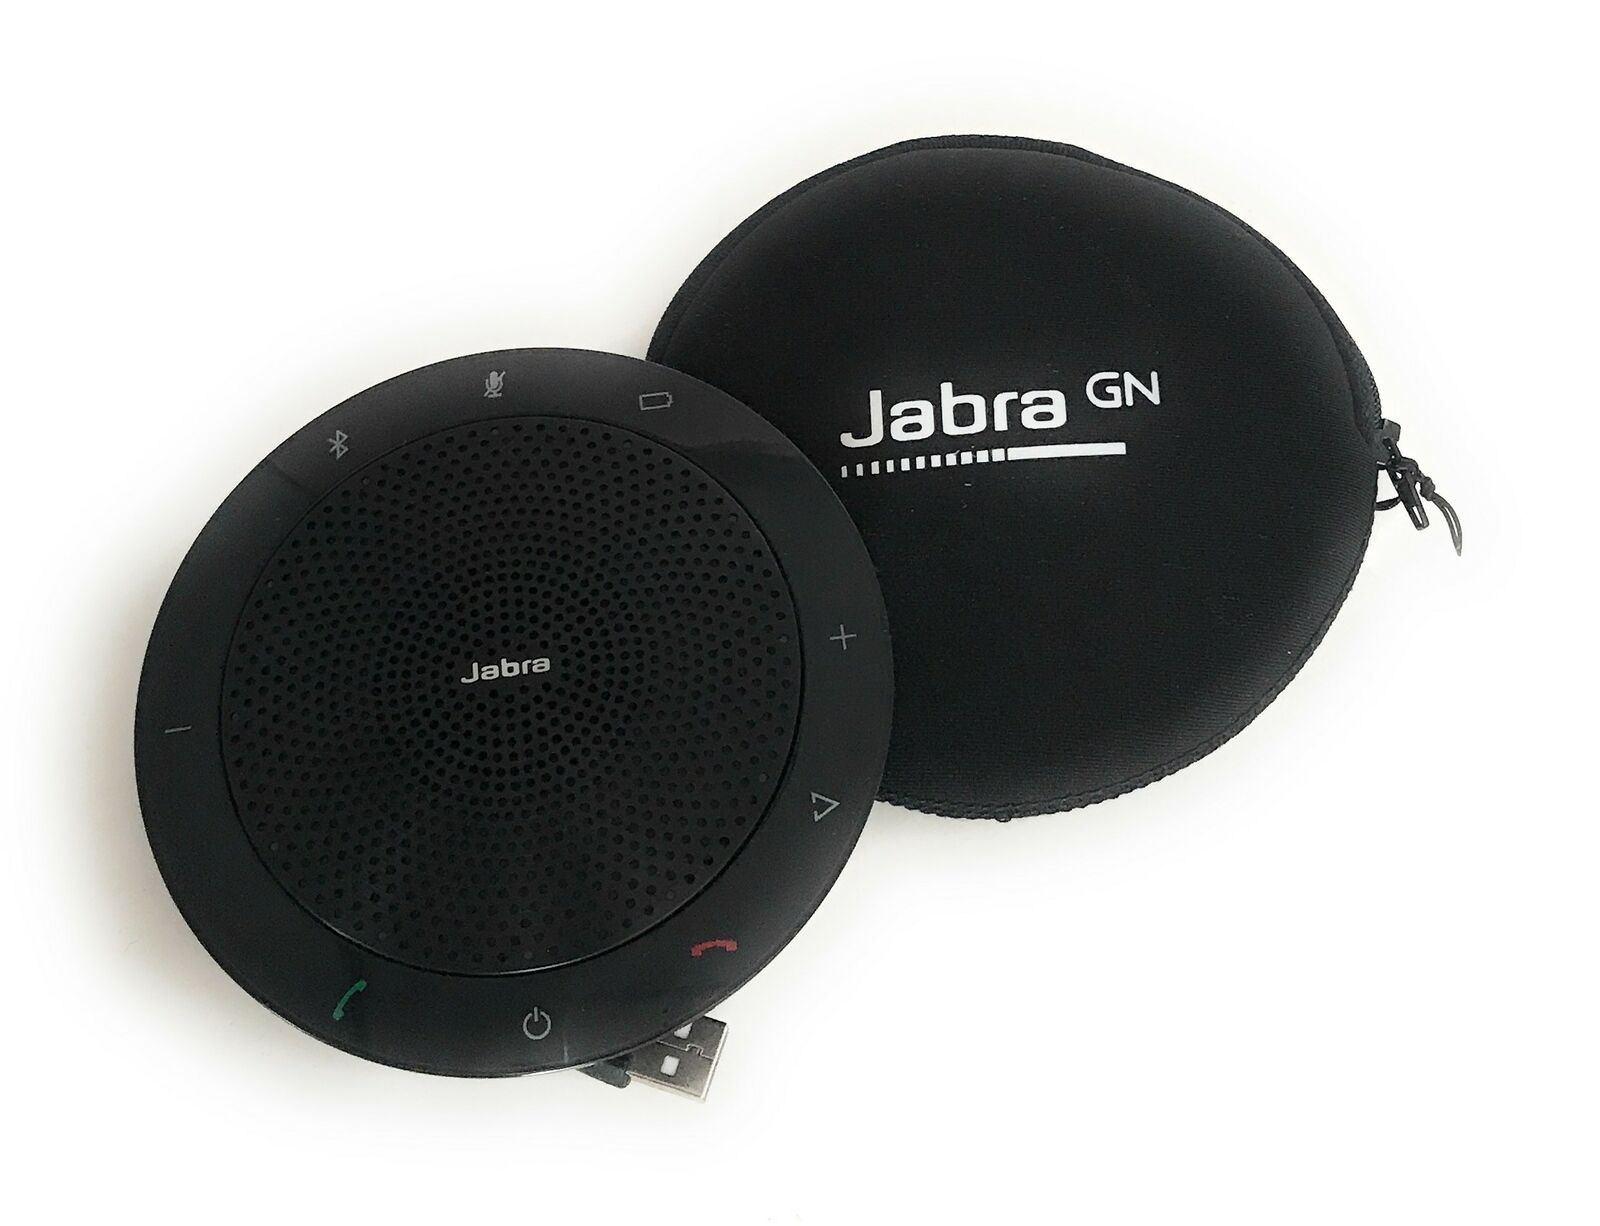 Jabra Speak 510 for Business – USB & Bluetooth Speakerphone Microsoft Optimized. Buy it now for 70.00